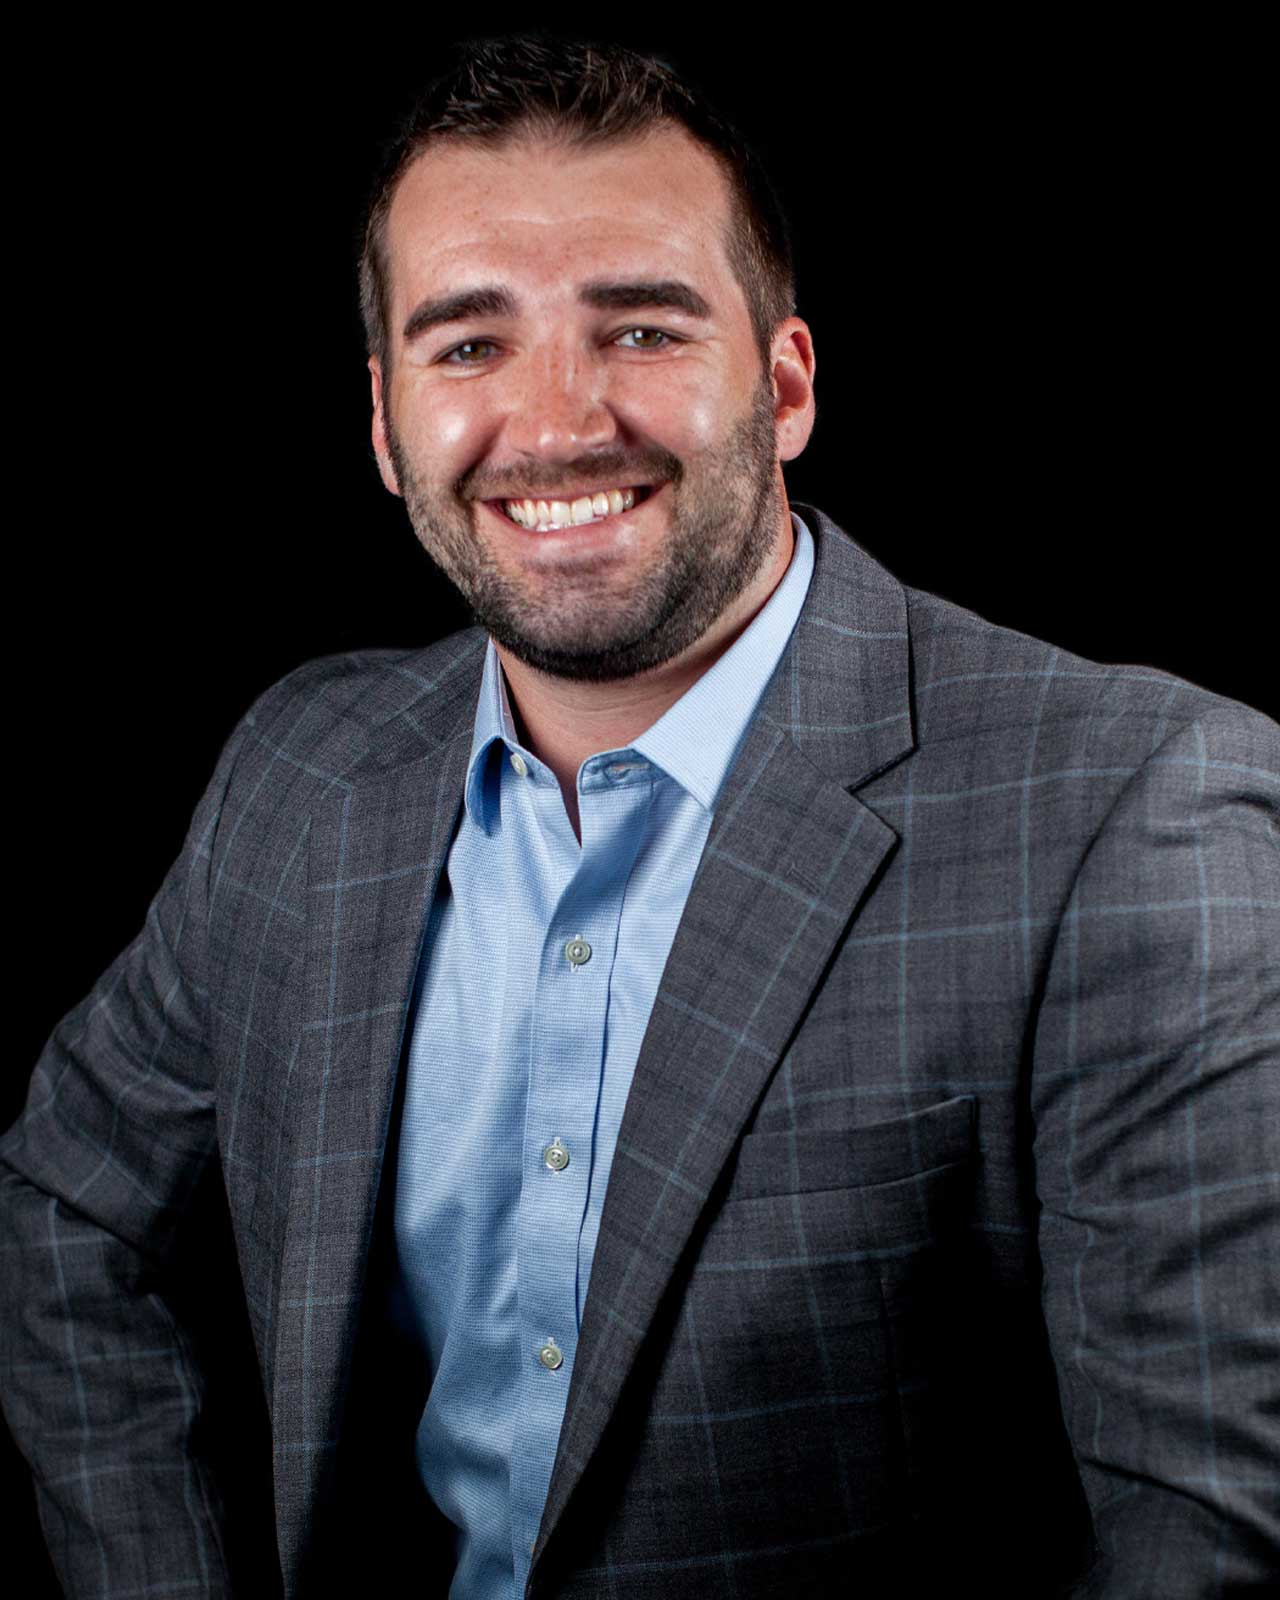 Chiropractor Dr. Ryan Cleous